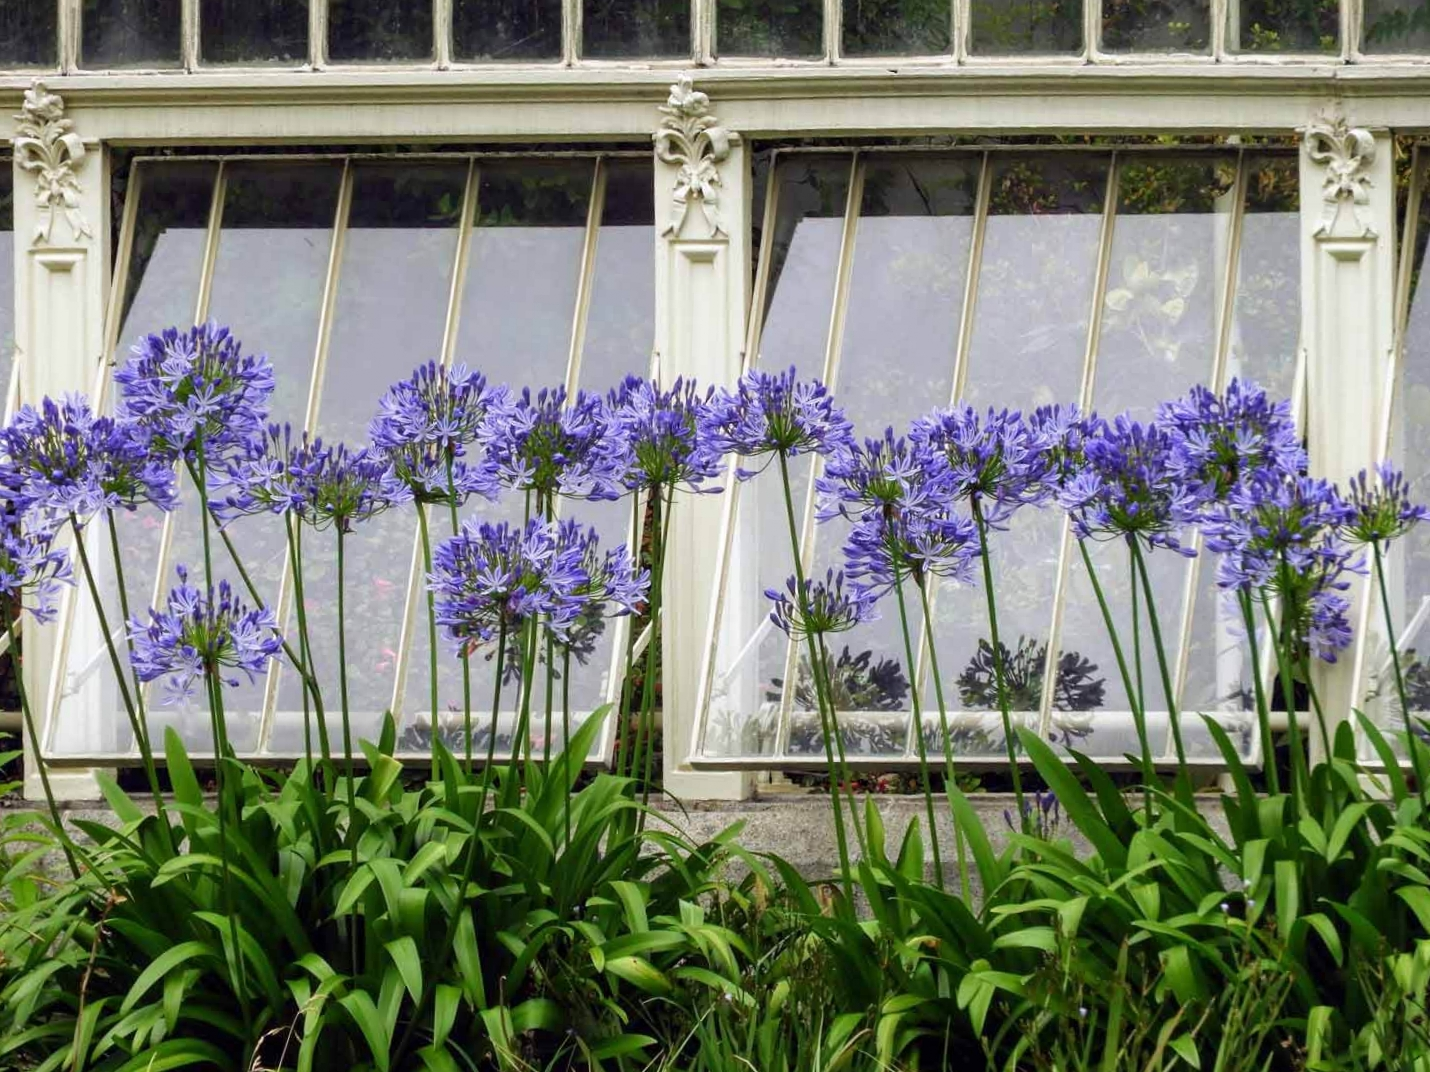 ireland-dublin-flower-botanical-gardens-window-greenhouse.jpg